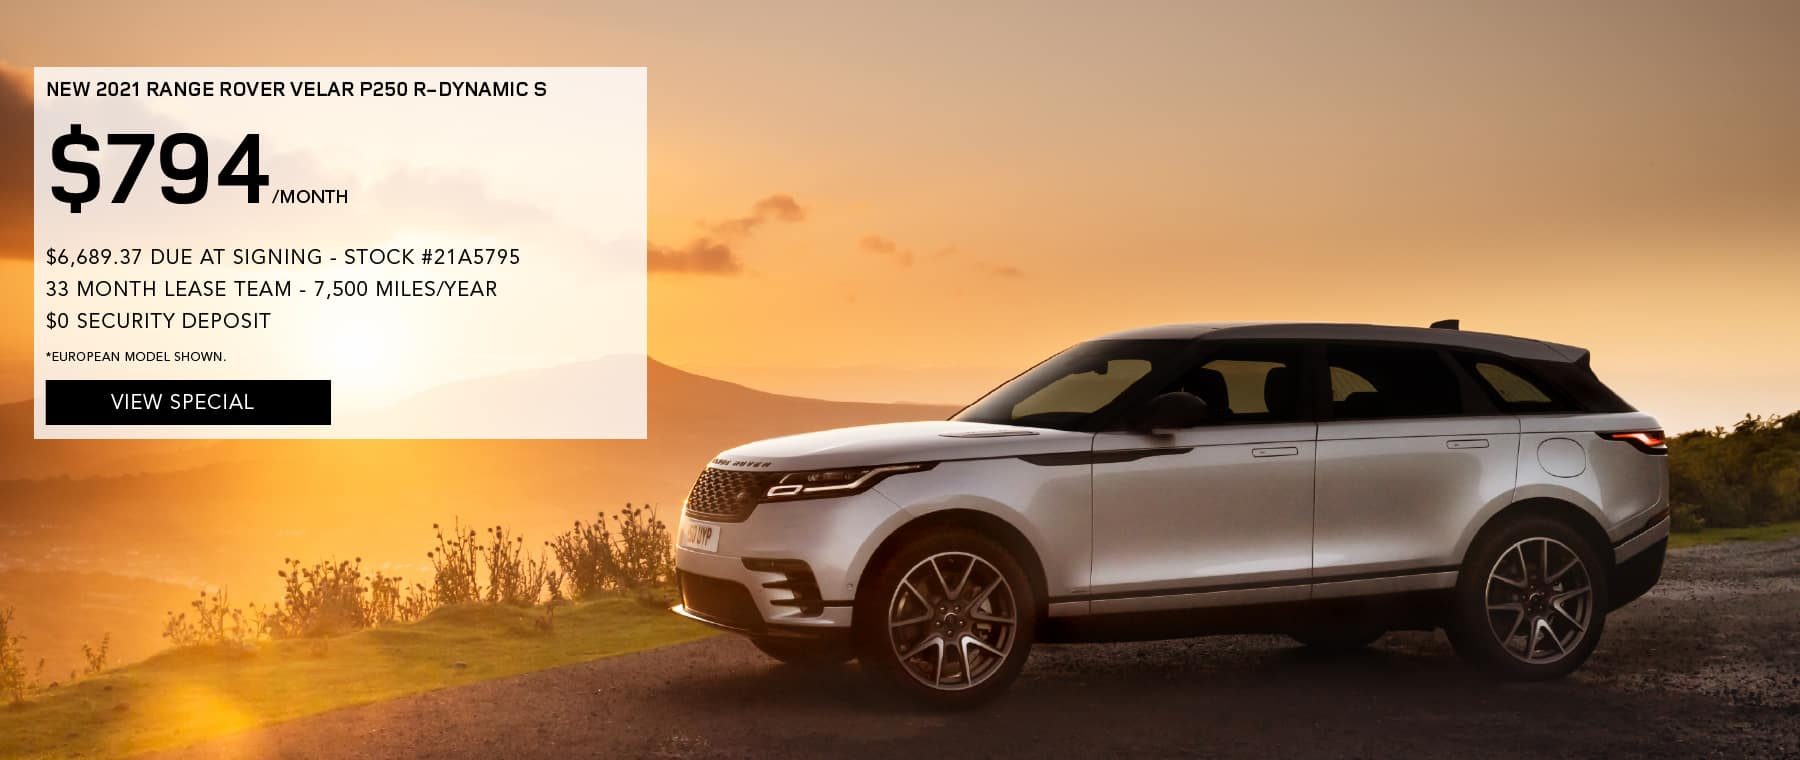 NEW 2021 RANGE ROVER VELAR P250 R-DYNAMIC S. $794 PER MONTH FOR 33 MONTHS. $6,689.37 DUE AT SIGNING. STOCK #21A5795. 7,500 MILES/YEAR. $0 SECURITY DEPOSIT. VIEW SPECIAL. SILVER RANGE ROVER VELAR PARKED IN MOUNTAIN RANGE.